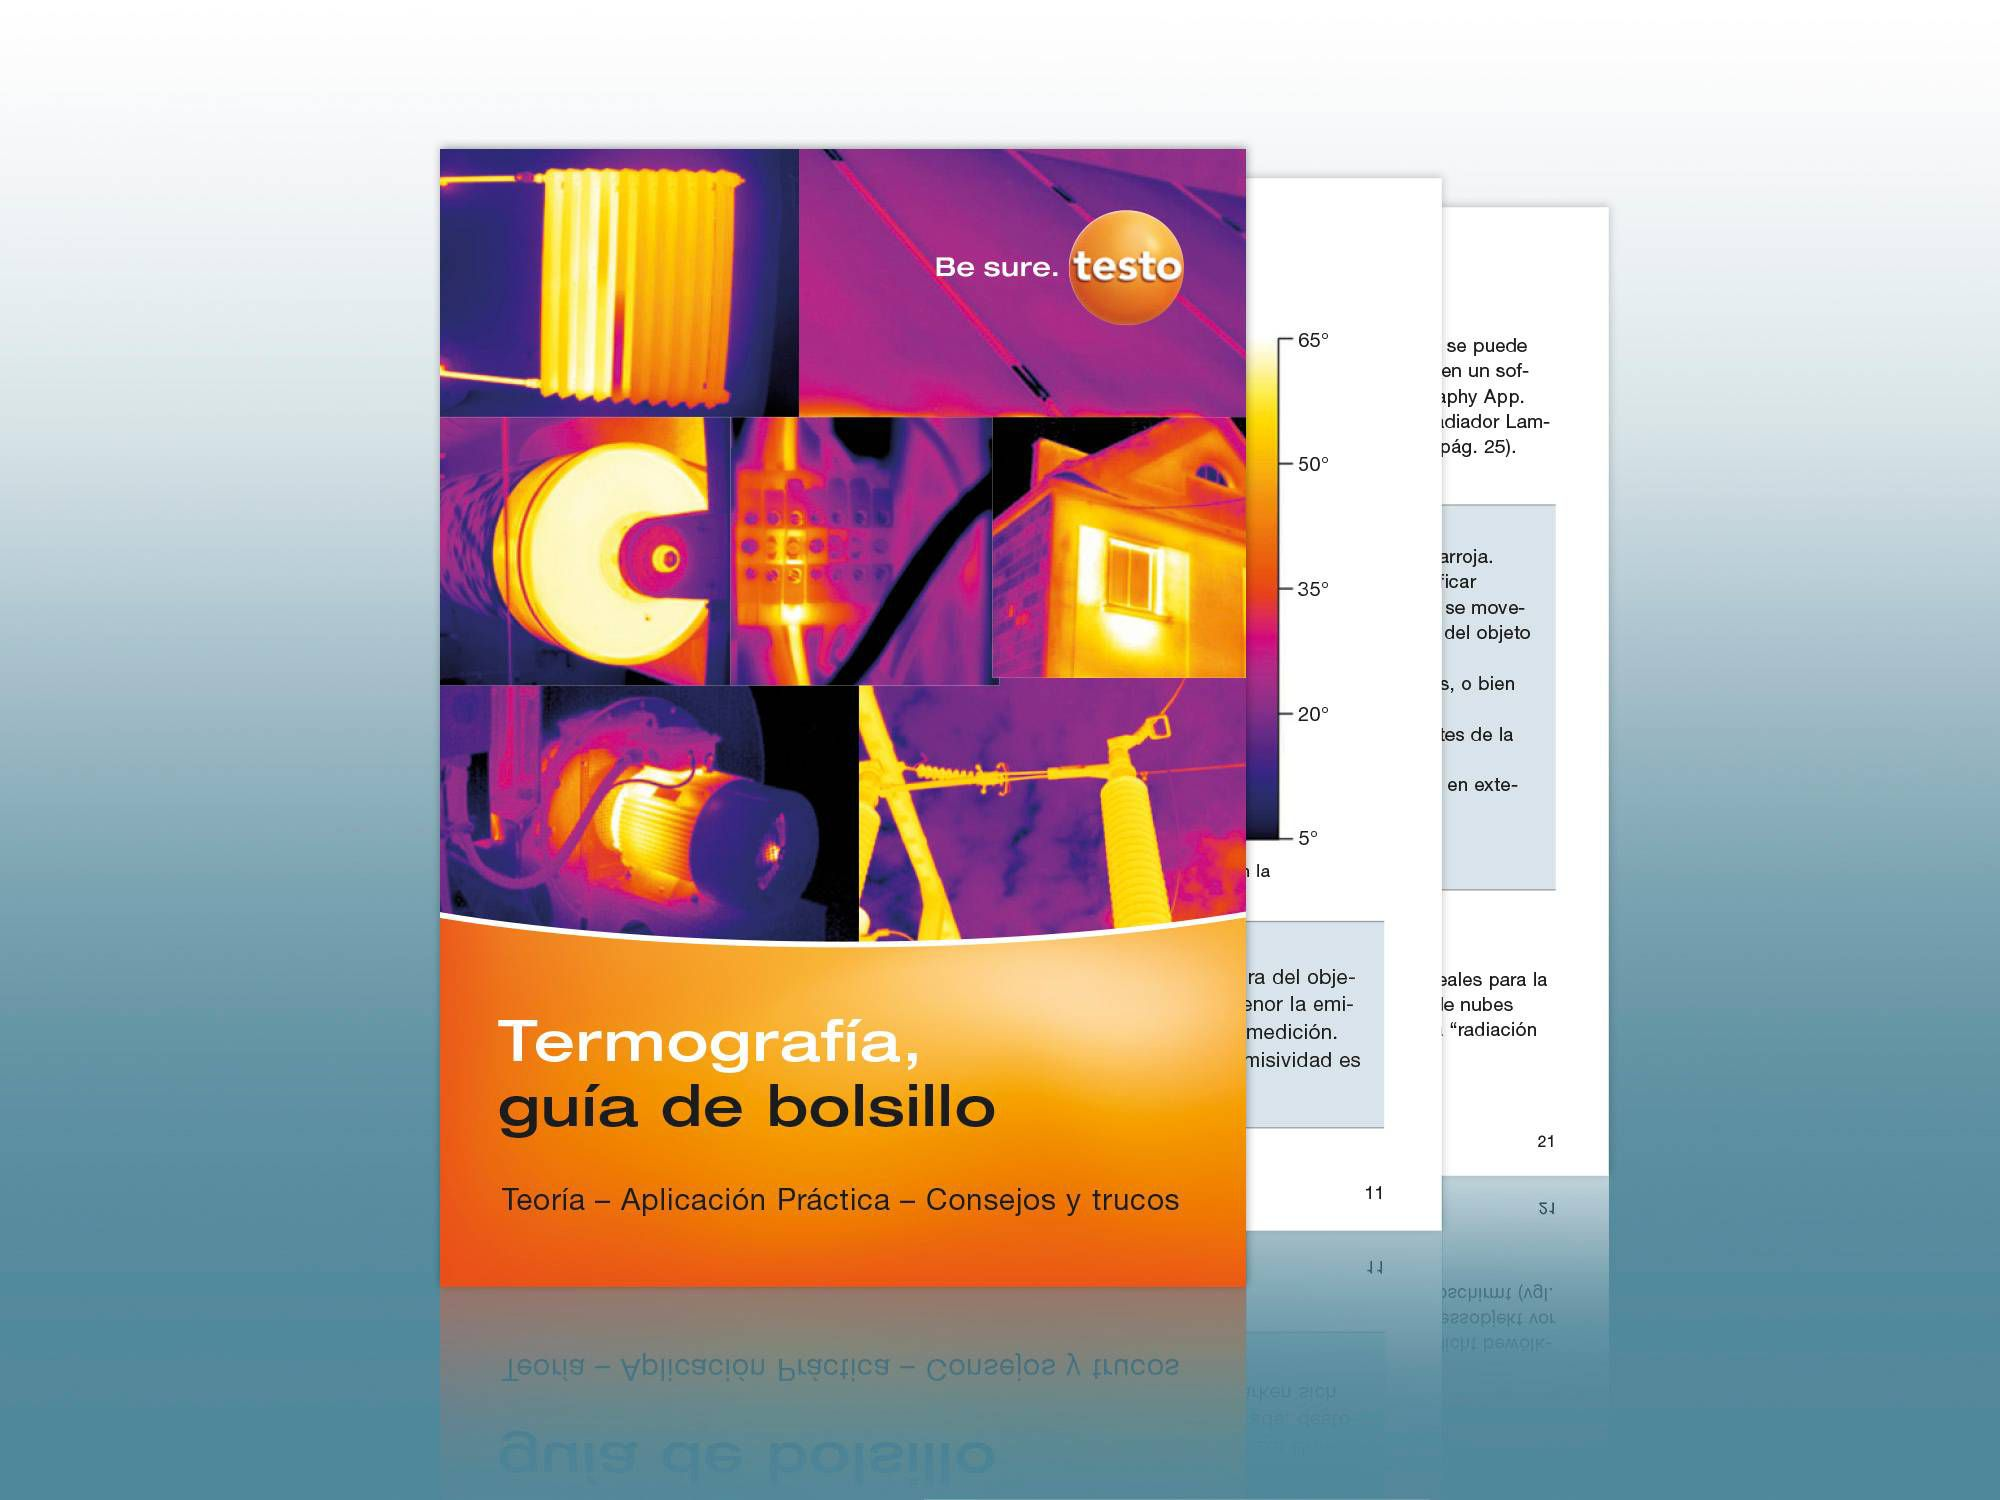 Pocket-Guide-Thermography-2000x1500-ES.jpg